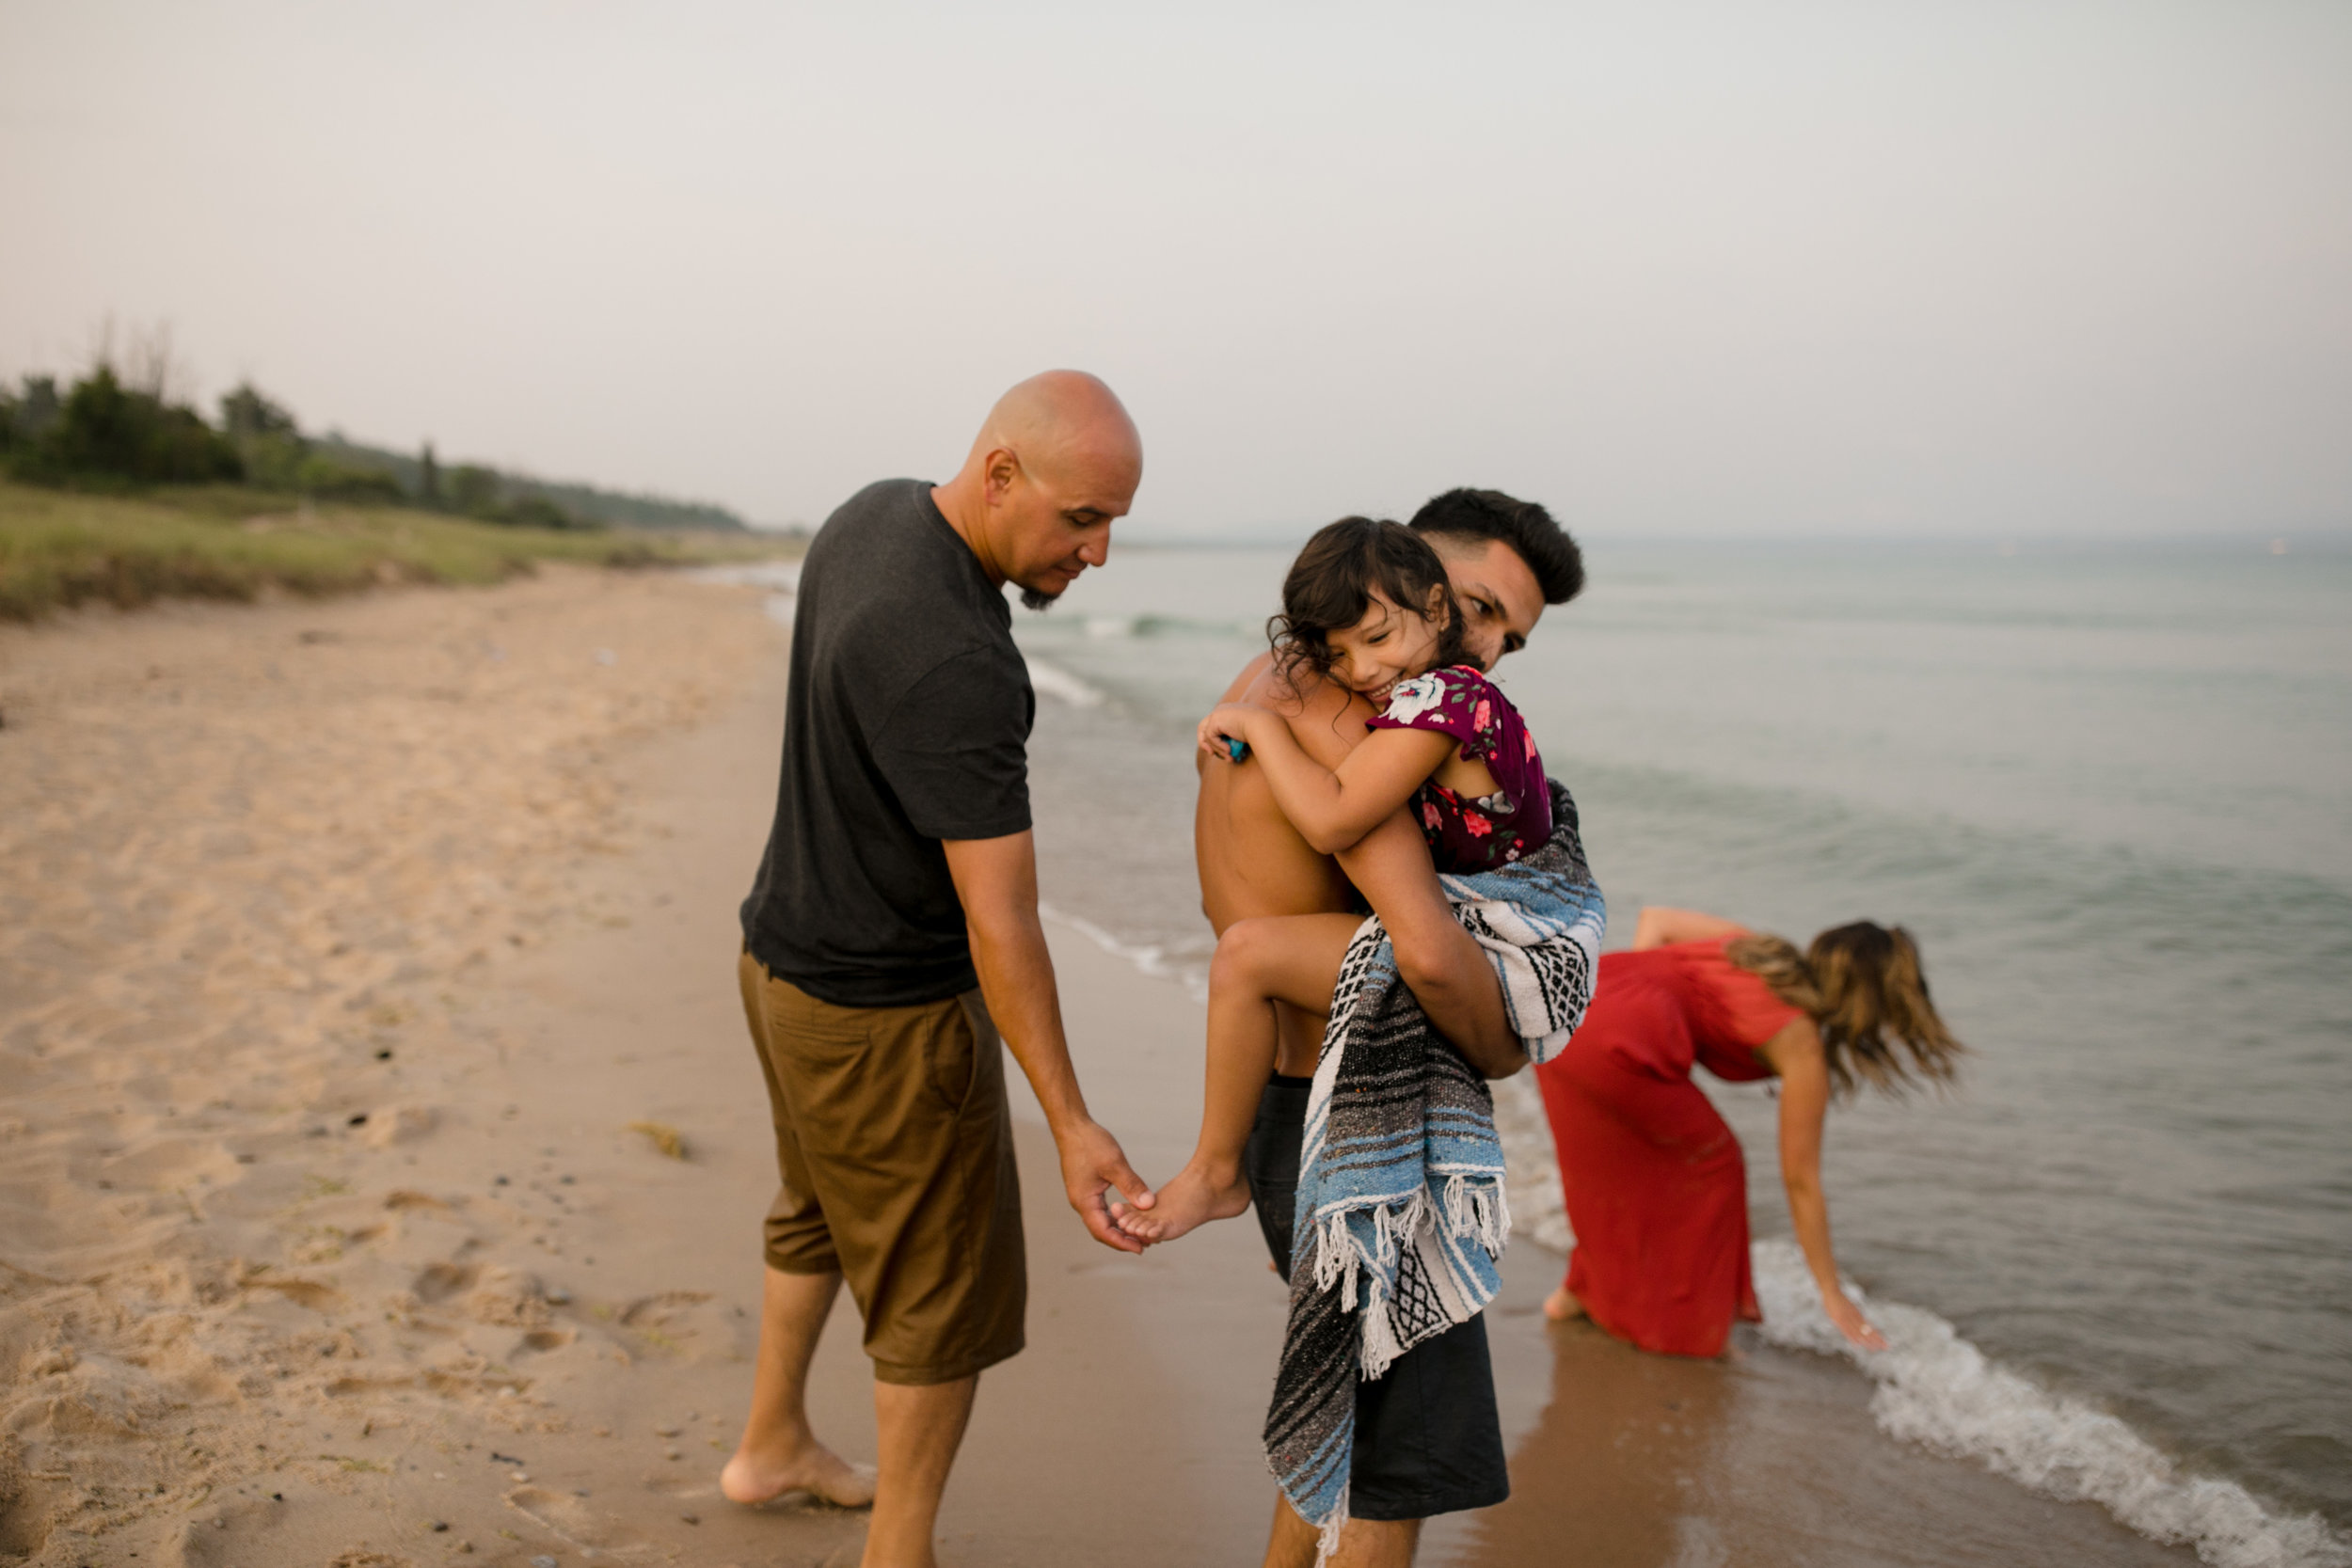 michigan-storytelling-photographer-esch-road-beach-empire-mi-santellano-family-173.jpg